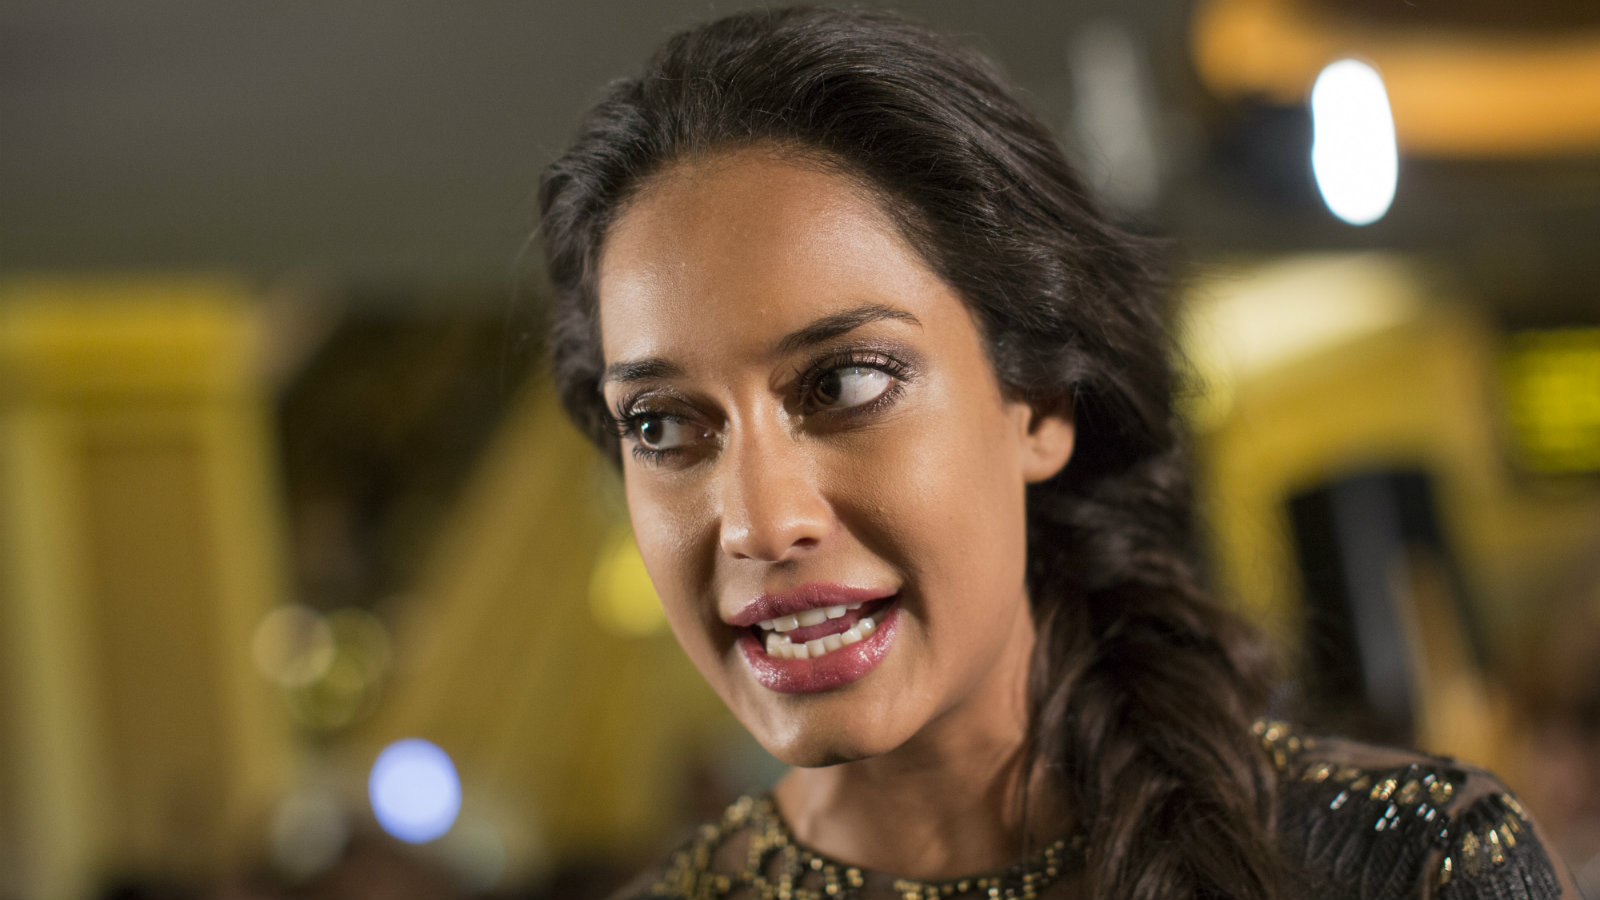 Indian actress Lisa Haydon arrives for the International Indian Film Academy (IIFA) awards ceremony at the Venetian hotel in Macau, China, 06 July 2013. The 14th edition of the IIFA Awards commemorates 100 years of Indian cinema and runs from 04 to 06 July.